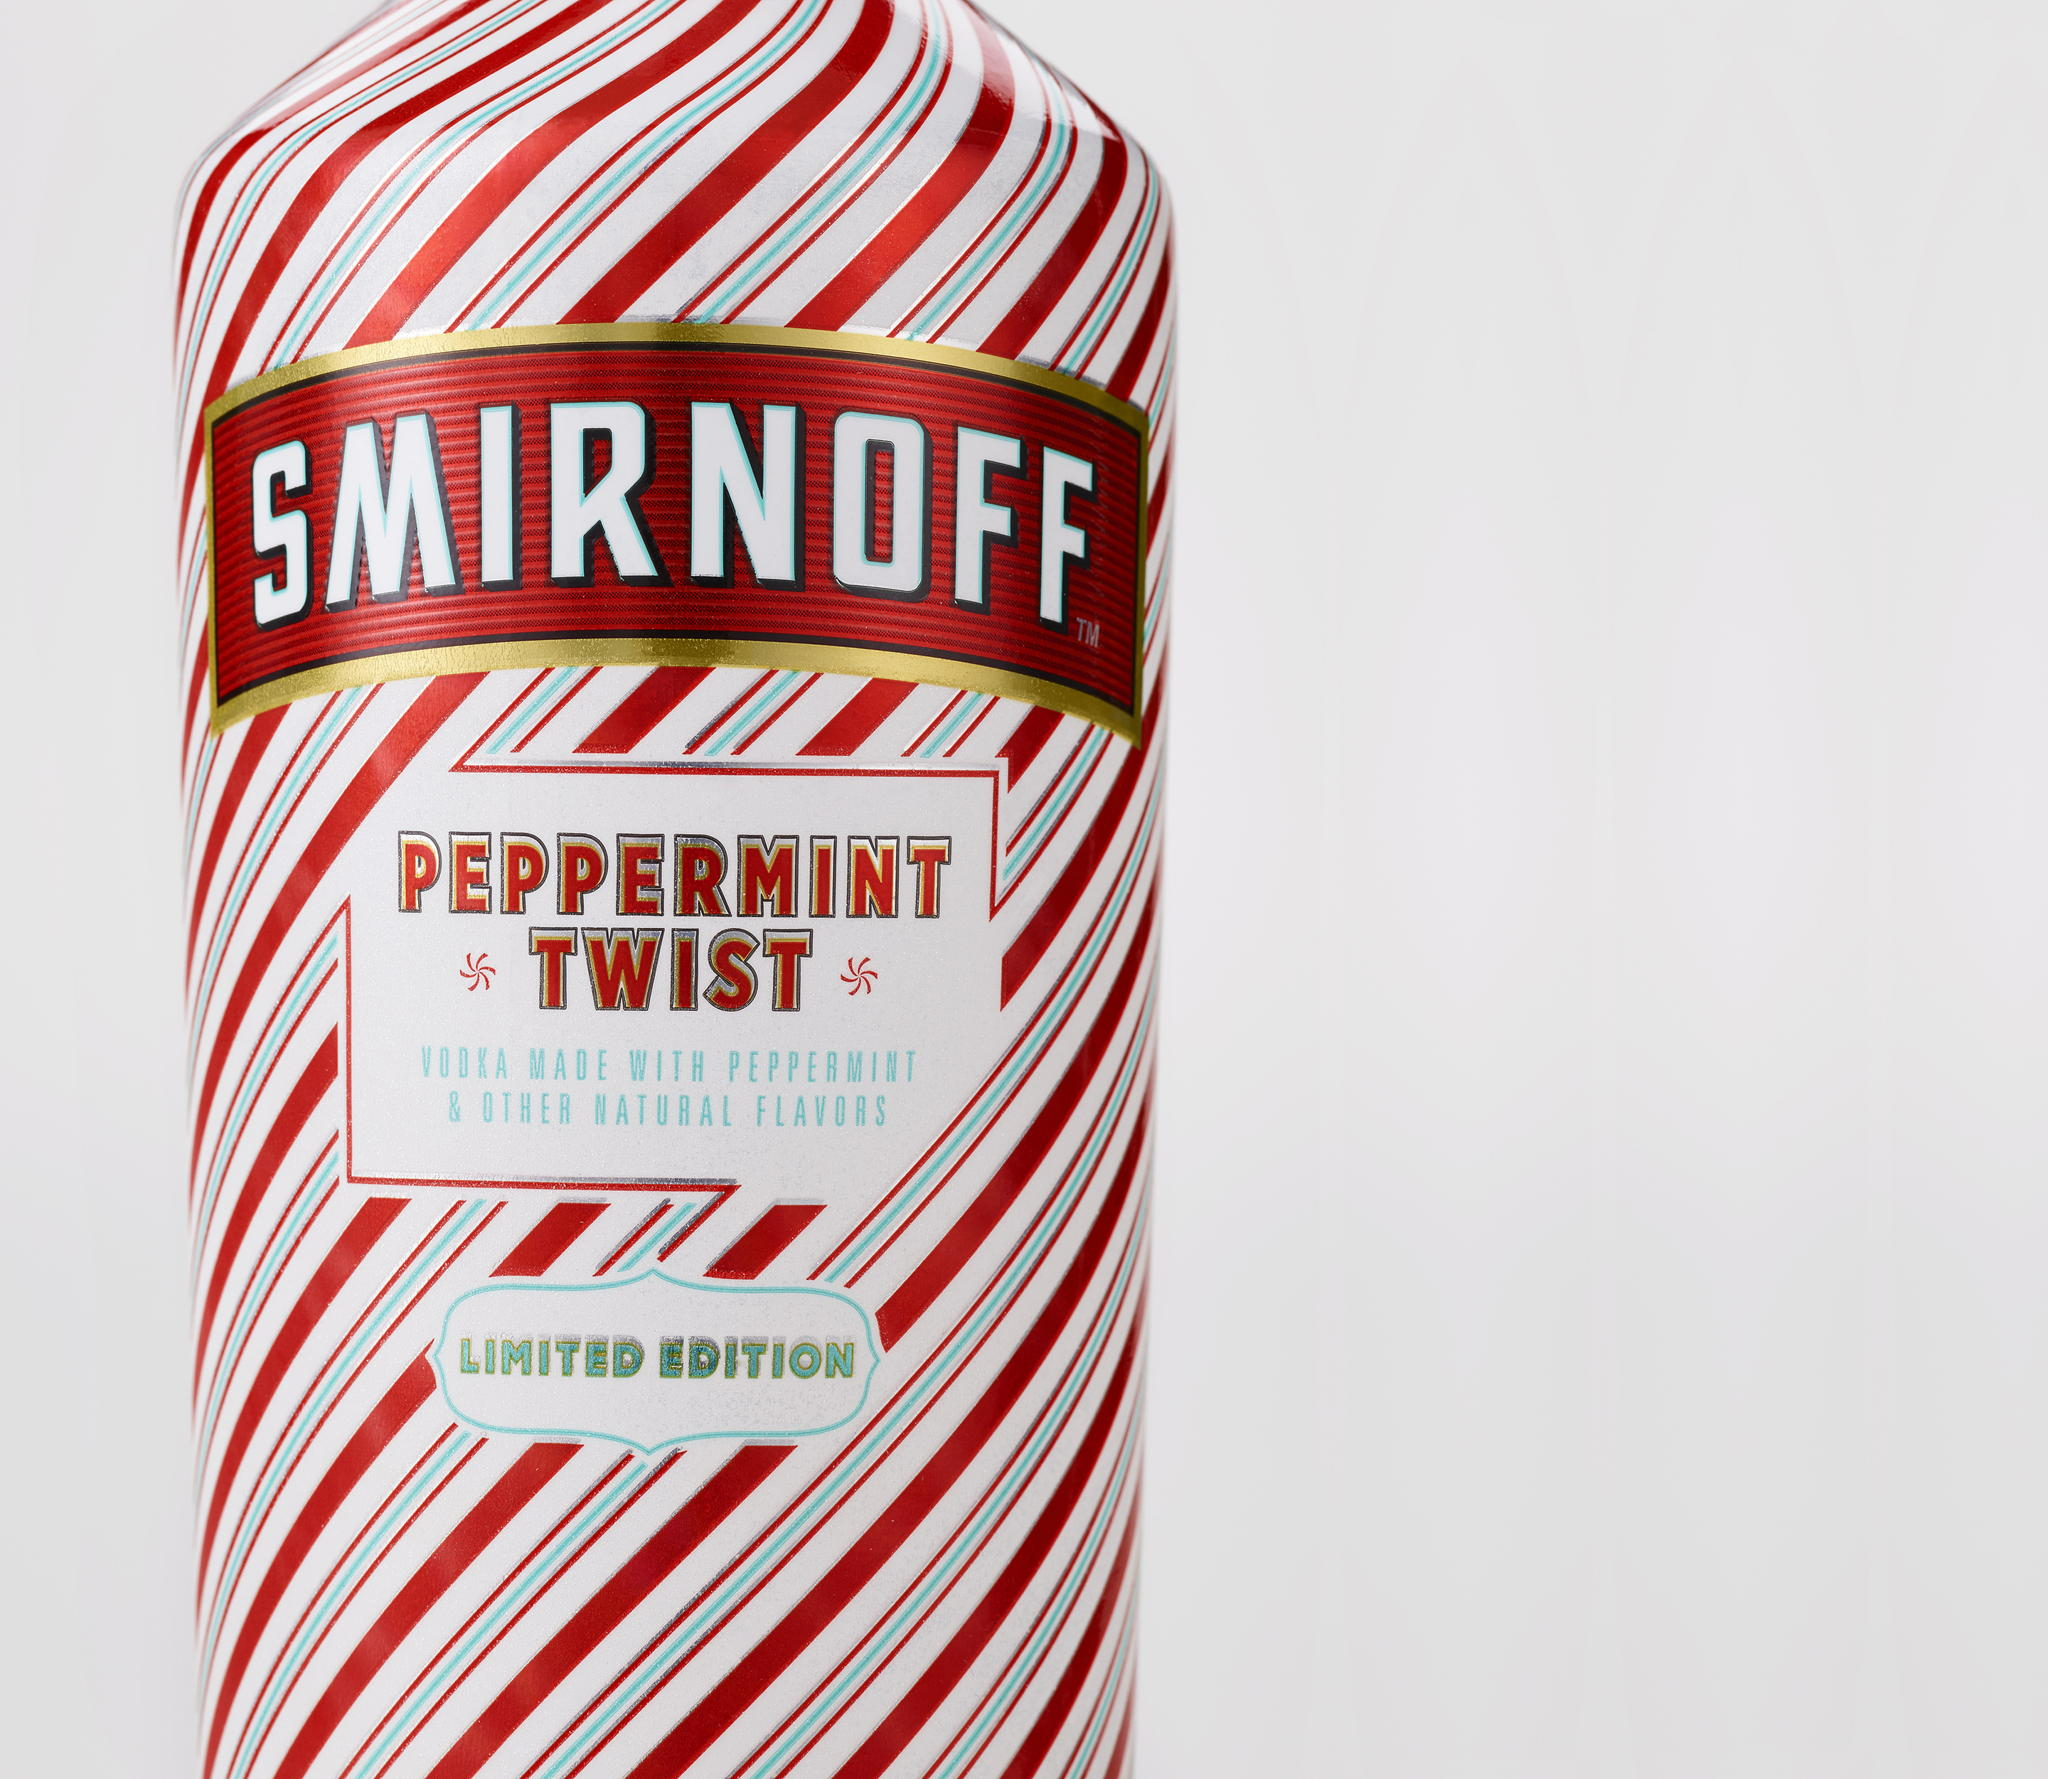 Smirnoff Peppermint Twist_detail.jpg